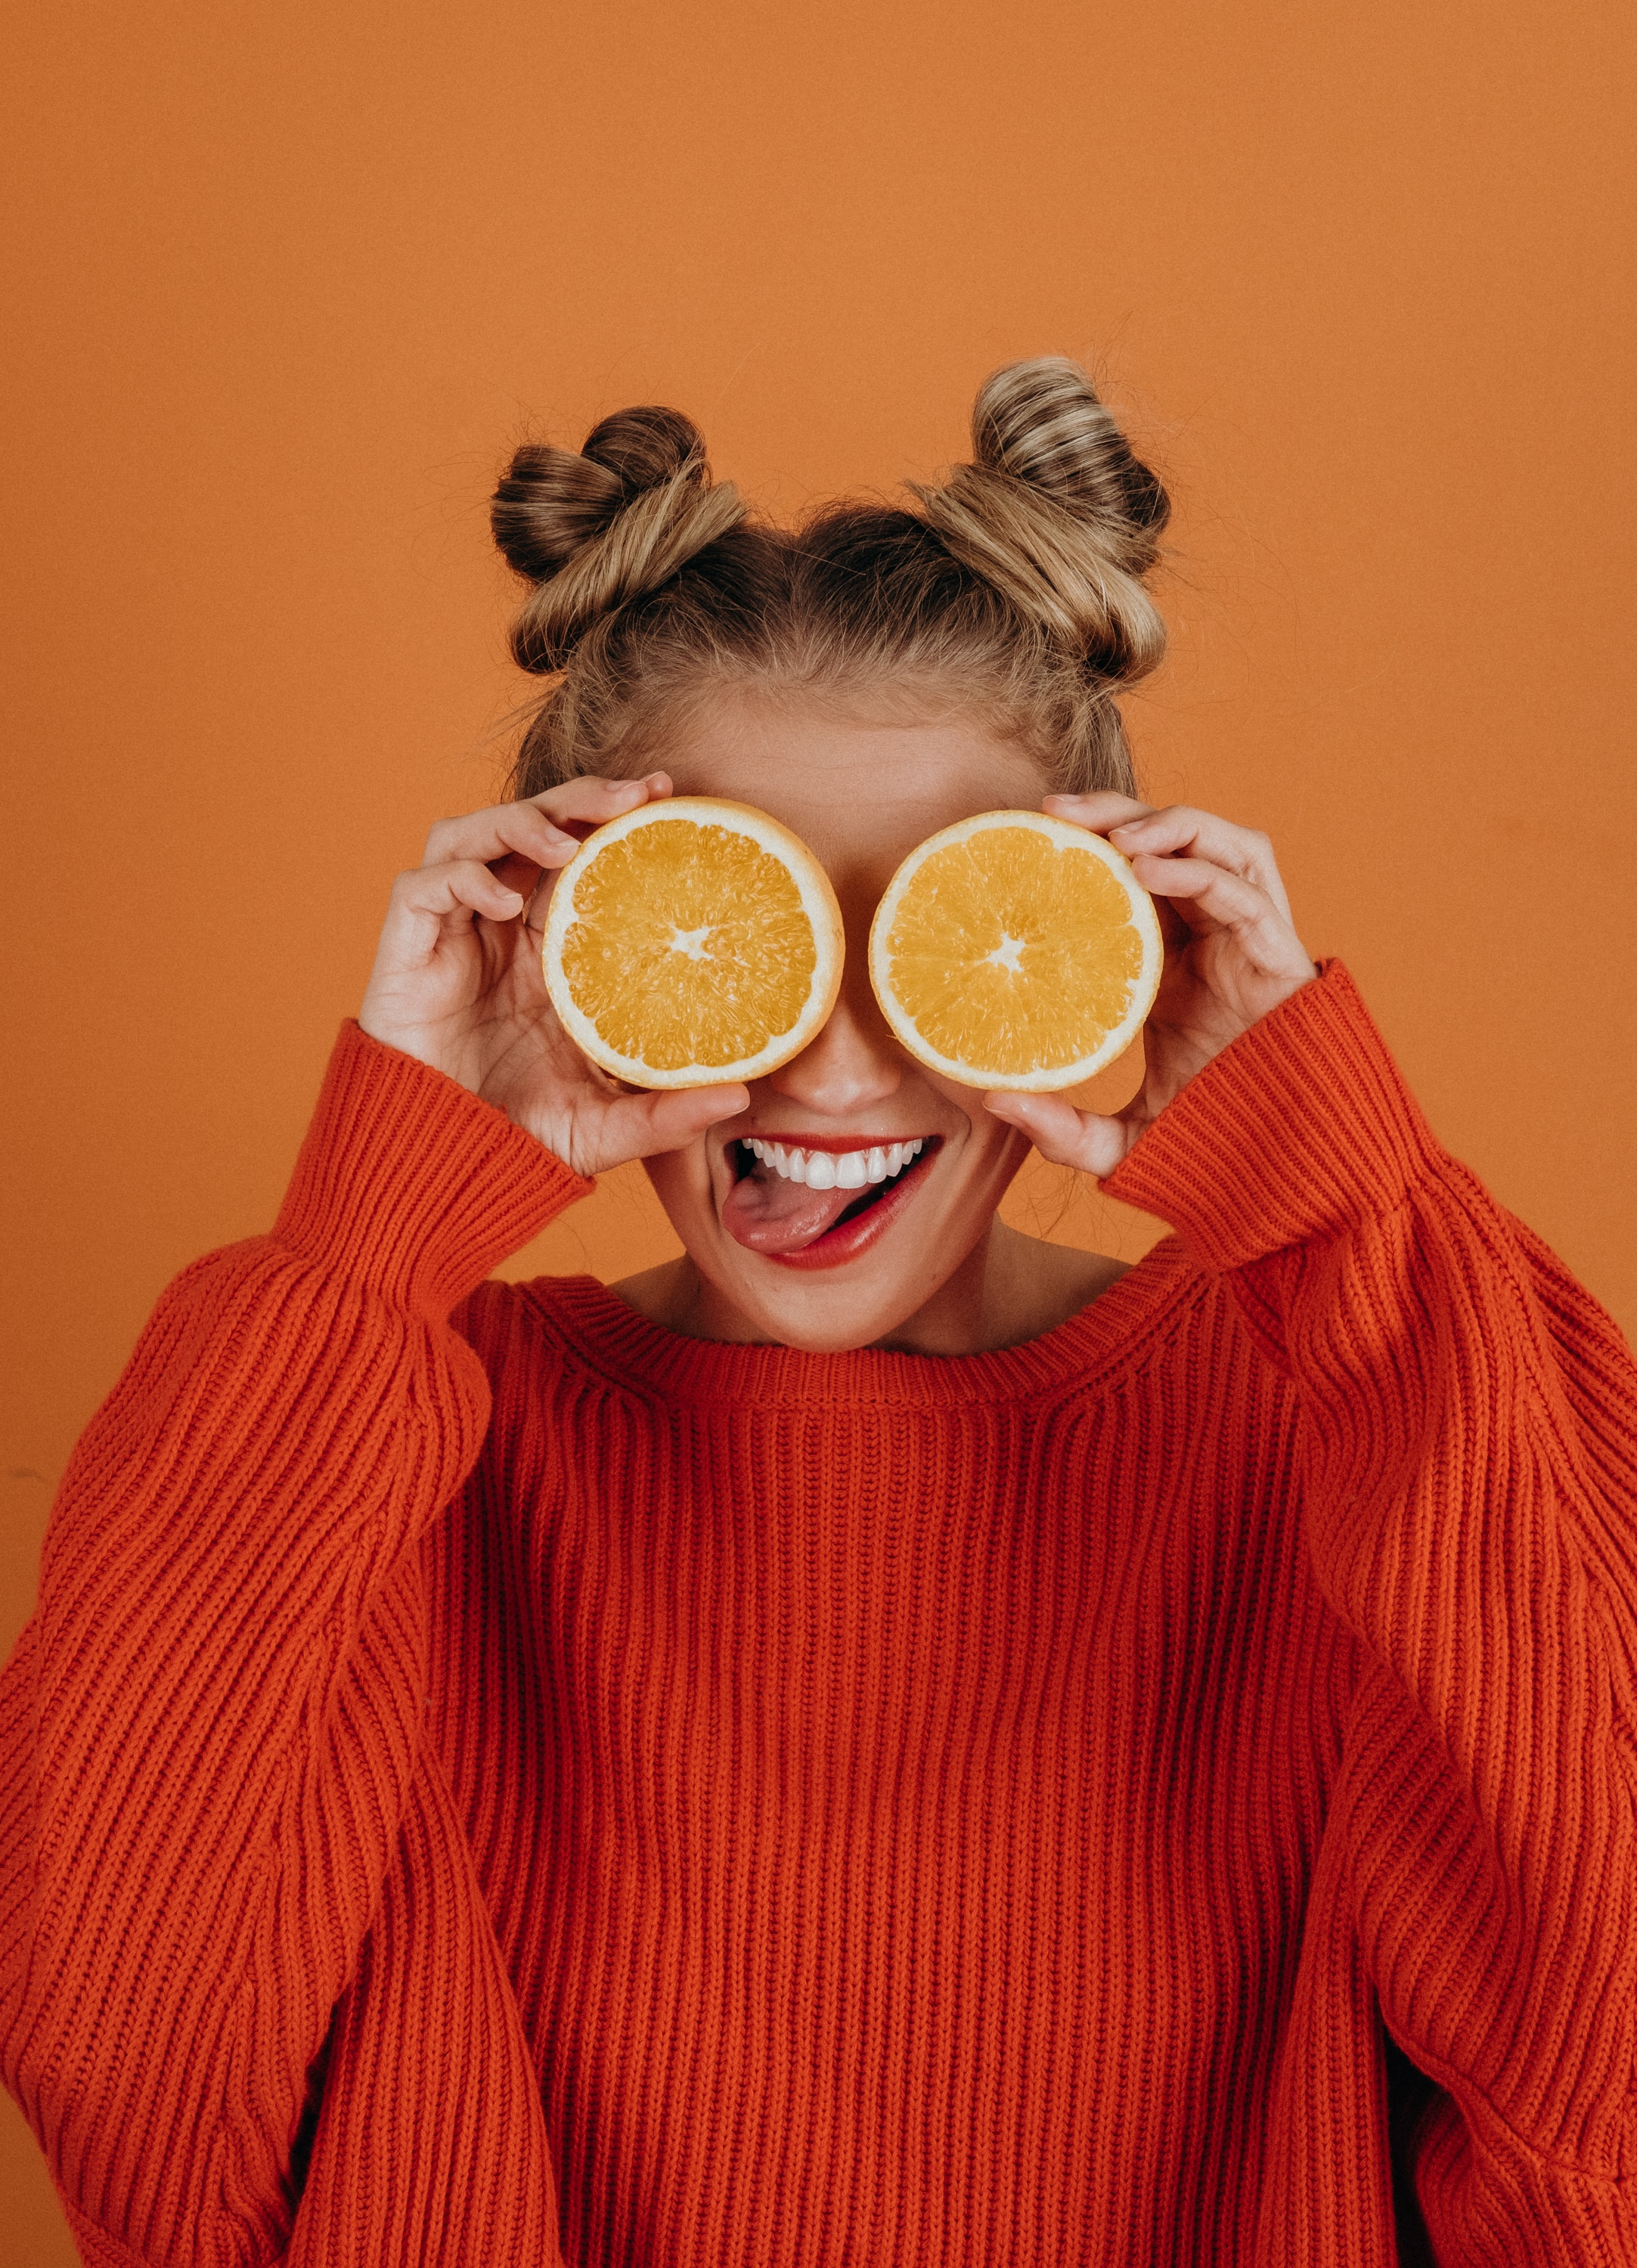 7 superfoods to feed your skin. Trust us, it'll love you for it!